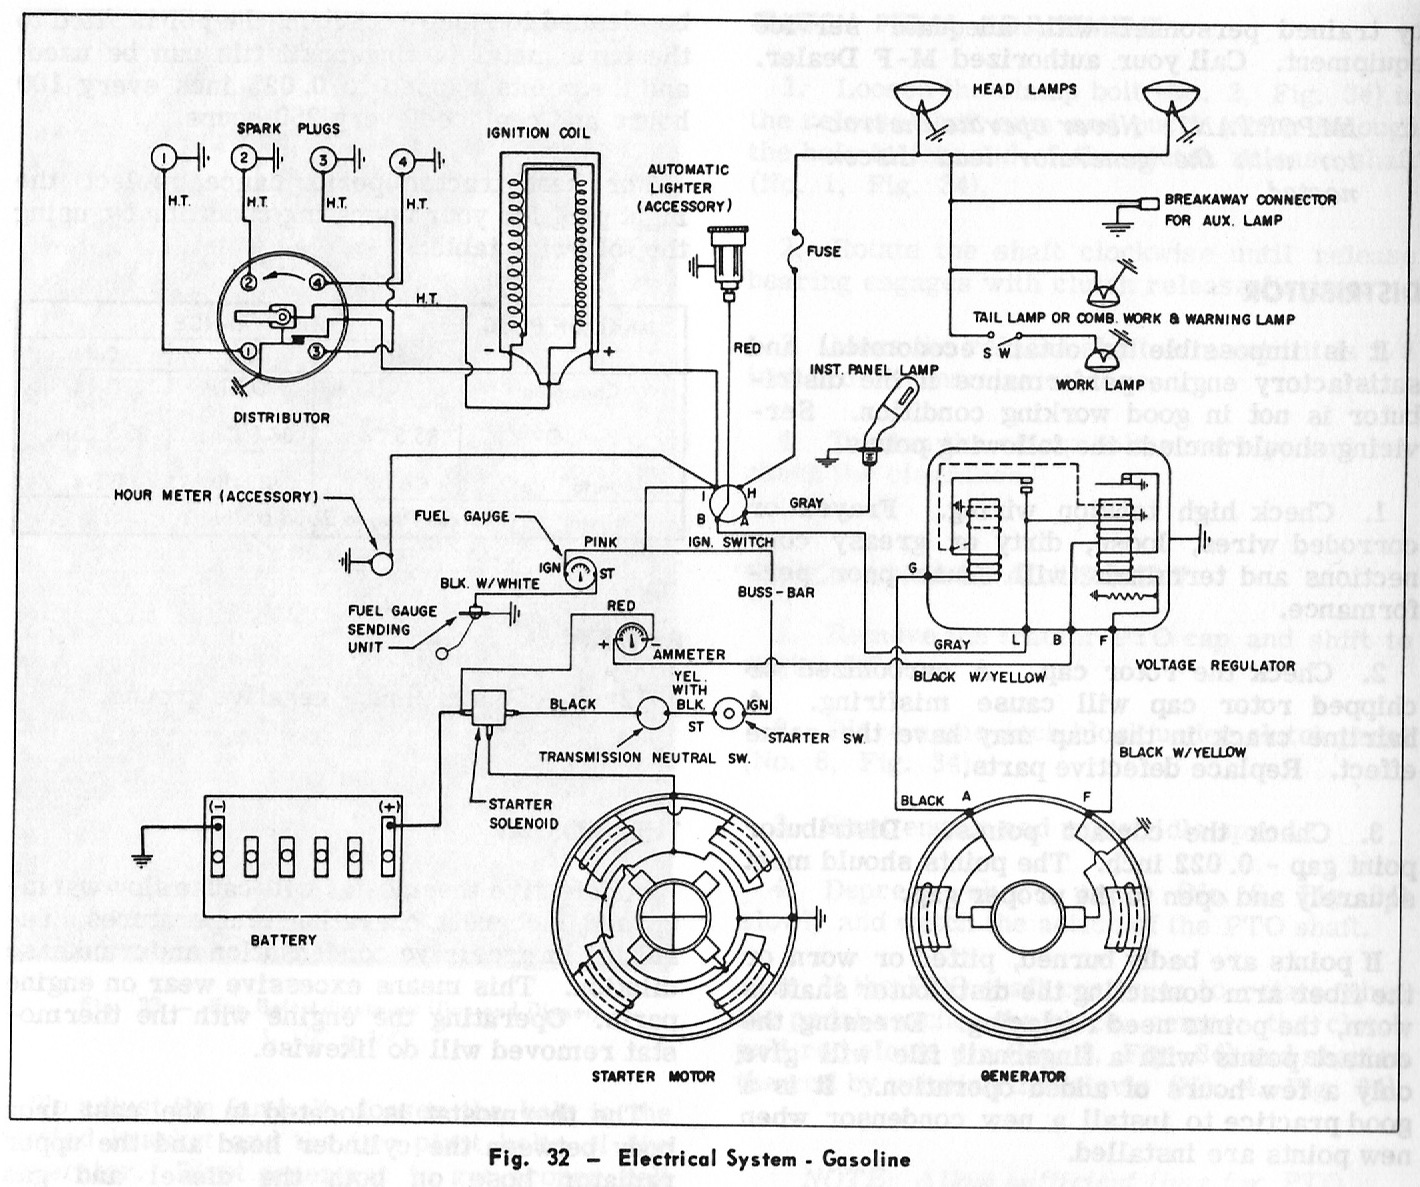 Wiring Diagram For Massey Ferguson 65